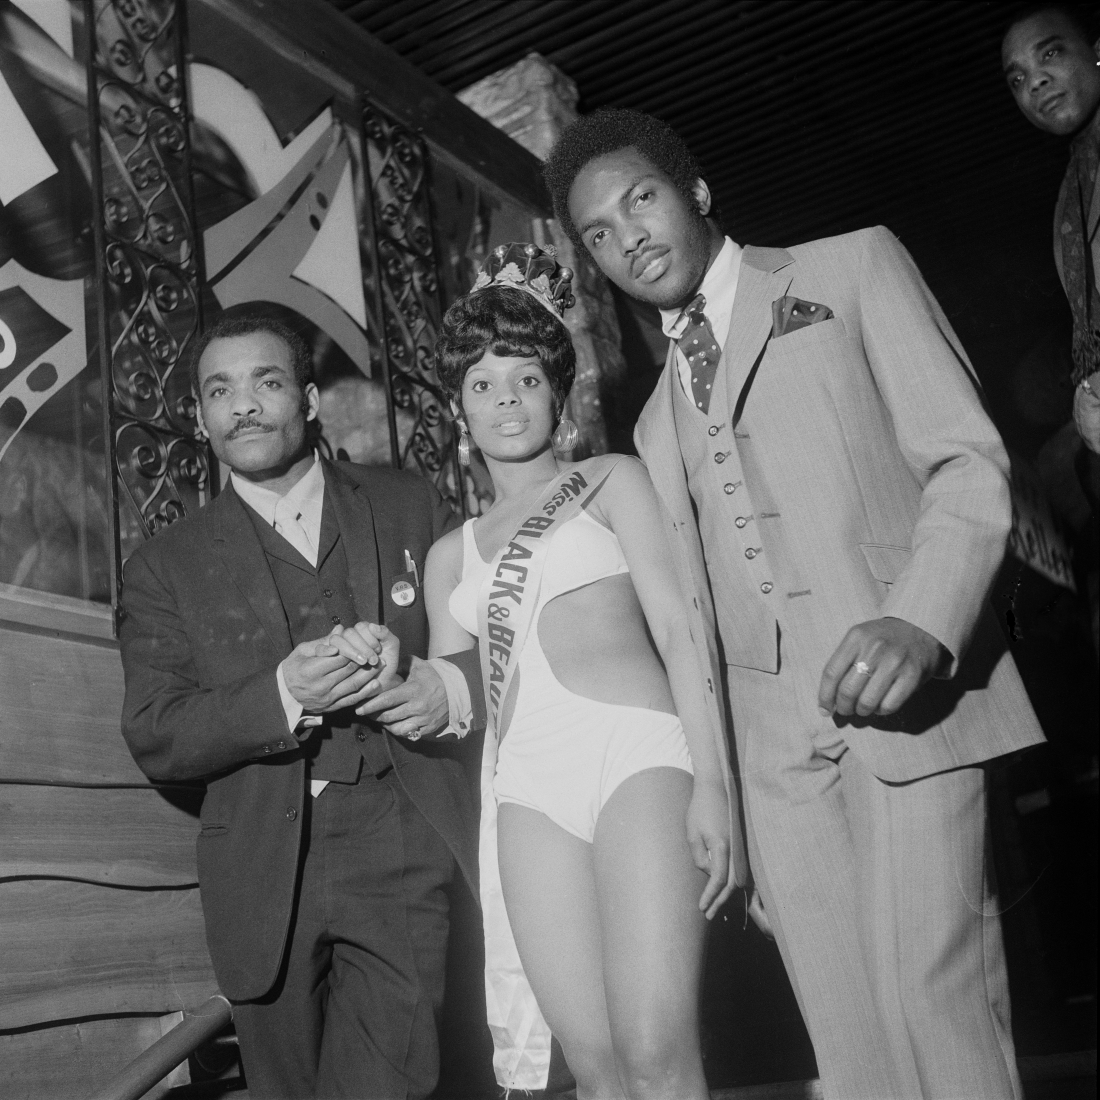 (unidentifed) Miss Black & Beautiful escorted by two men, Hammersmith Palais, London, 1970s. From the portfolio 'Black Beauty Pageants'. © Raphael Albert, courtesy Autograph ABP